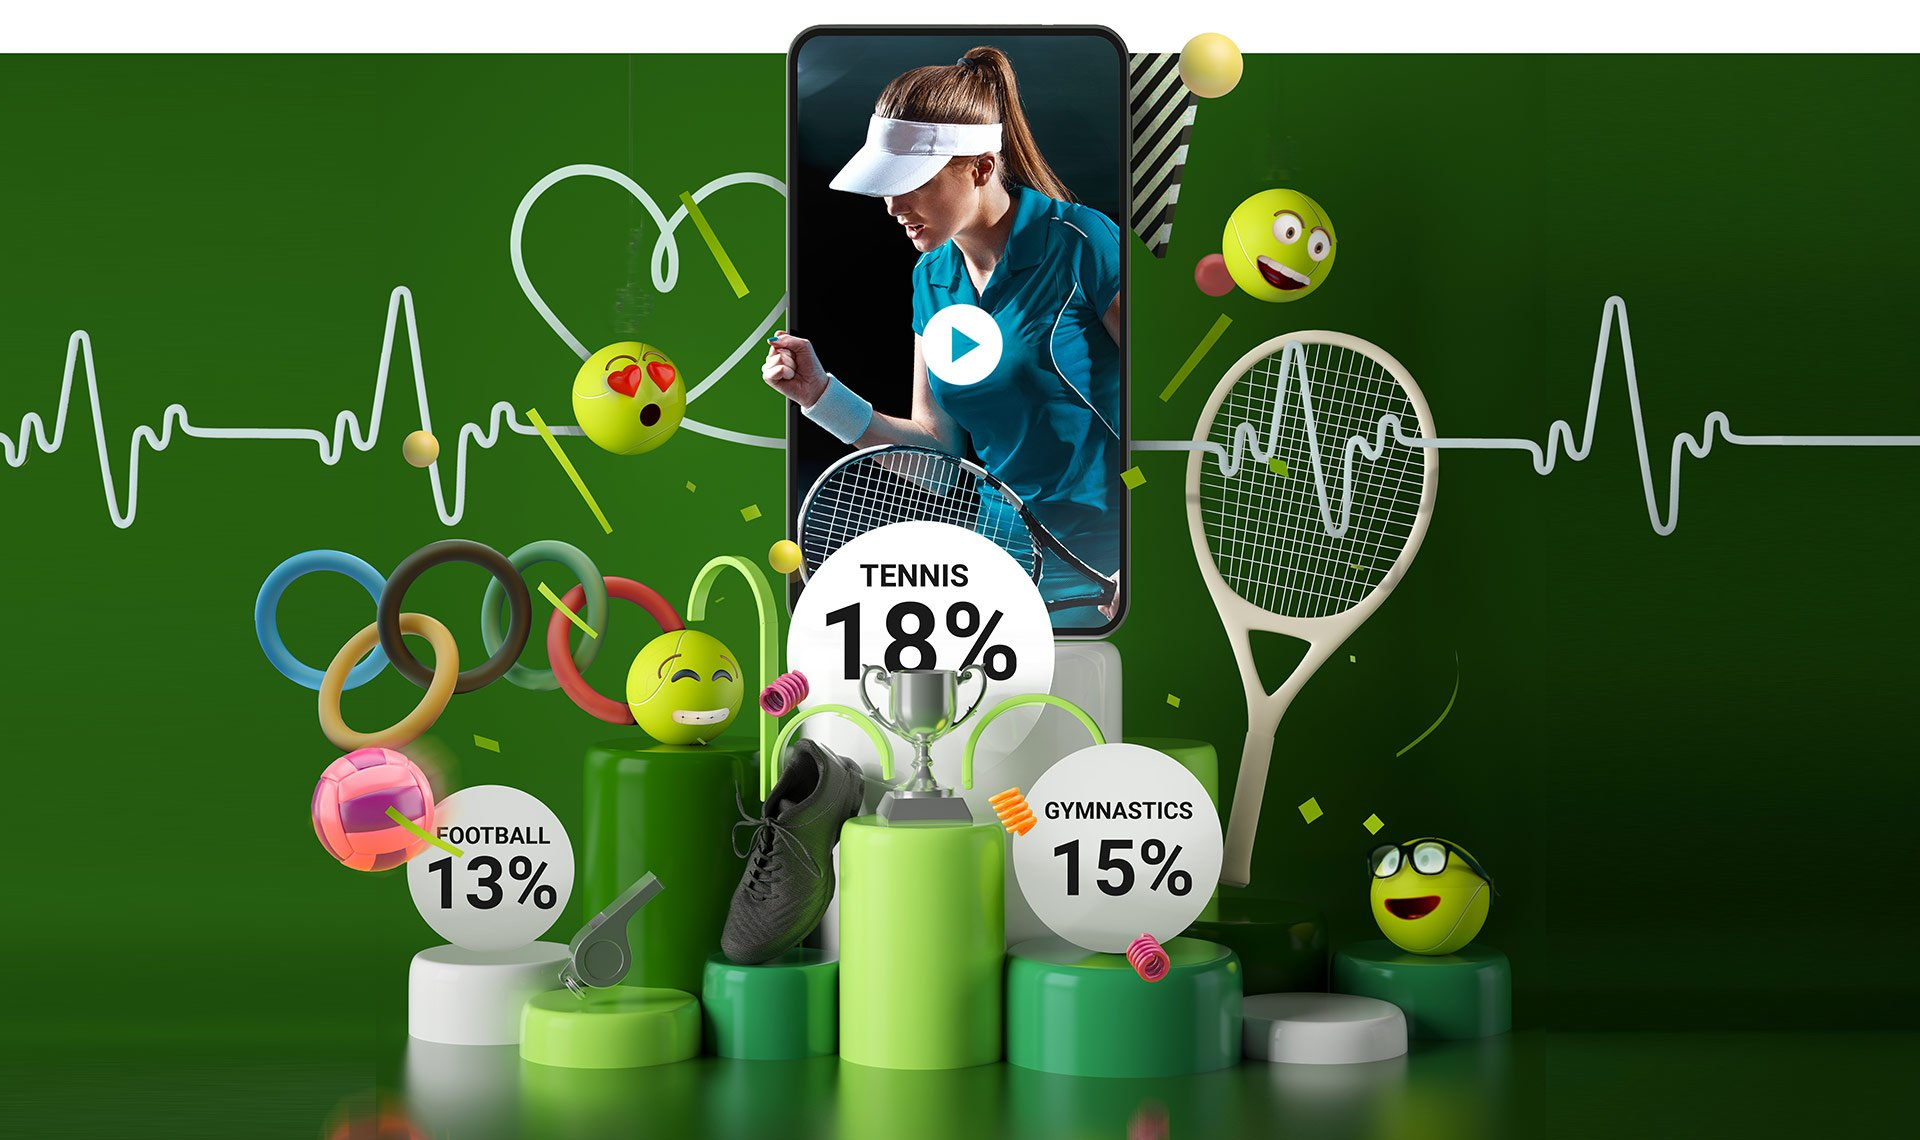 Illustration fo a podium surrounded by happy emoticons with Tennis awarded as the winner